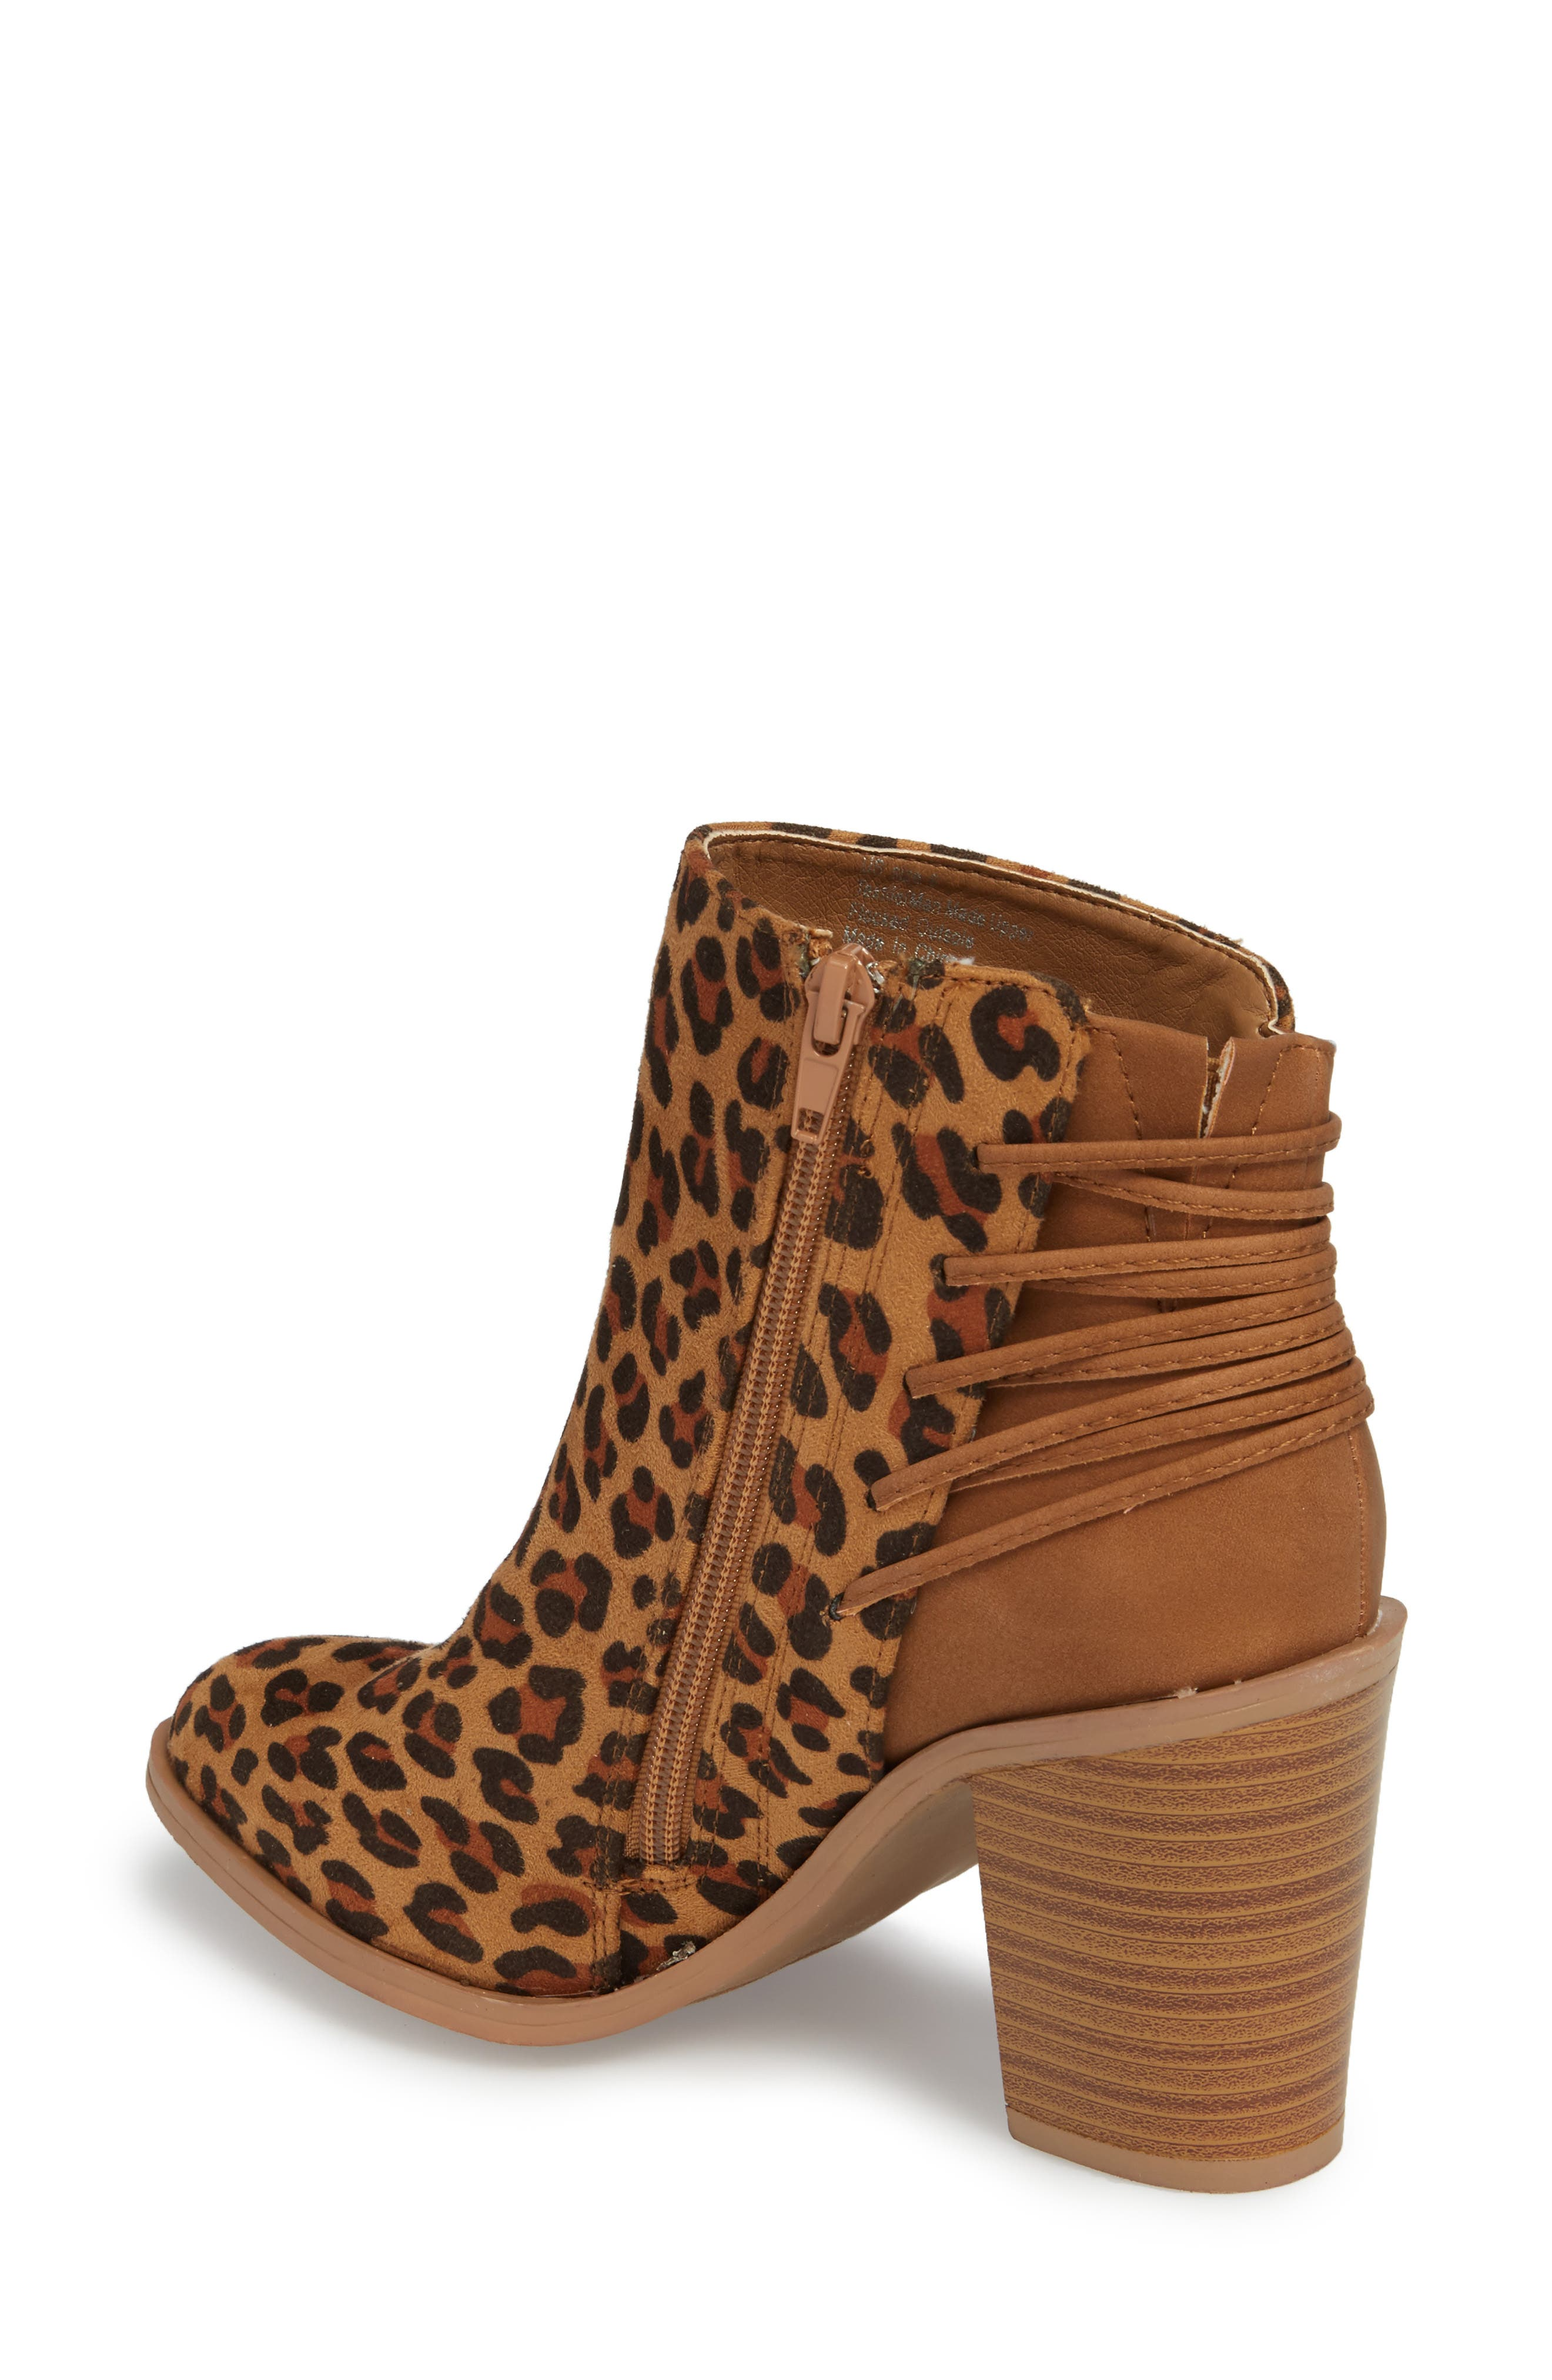 Lacey Leopard Bootie,                             Alternate thumbnail 2, color,                             Tan Leopard Suede Leather